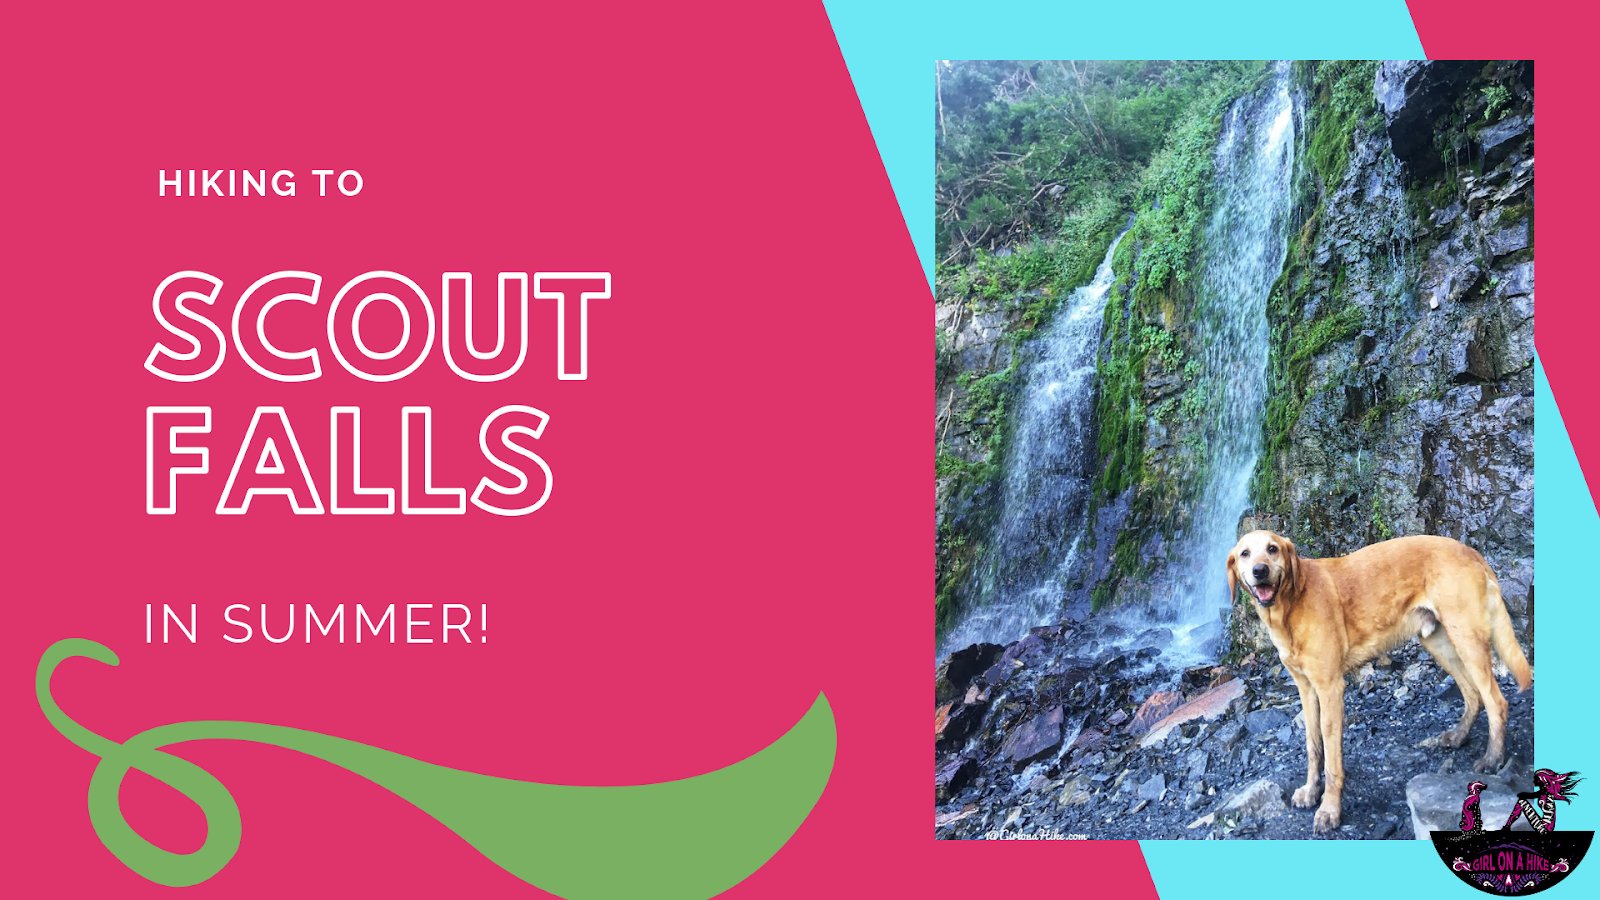 Hiking to Scout Falls - In Summer!, Scout Falls American Fork Canyon, Hiking the Timpooneke Trail, utah waterfalls